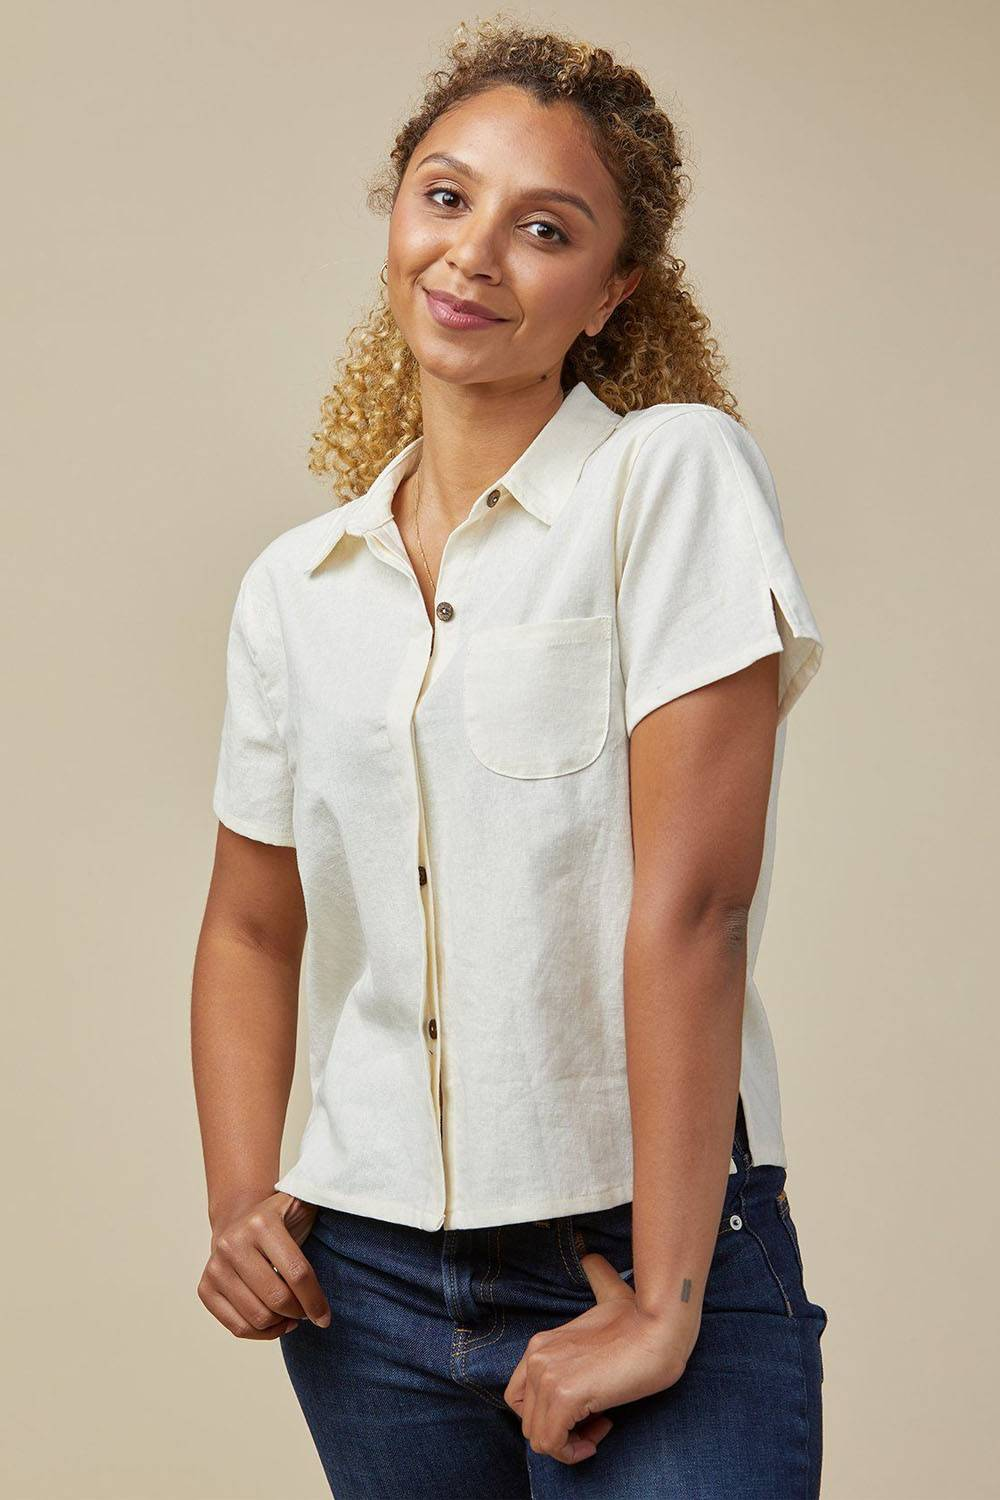 affordable linen clothing usa made trade